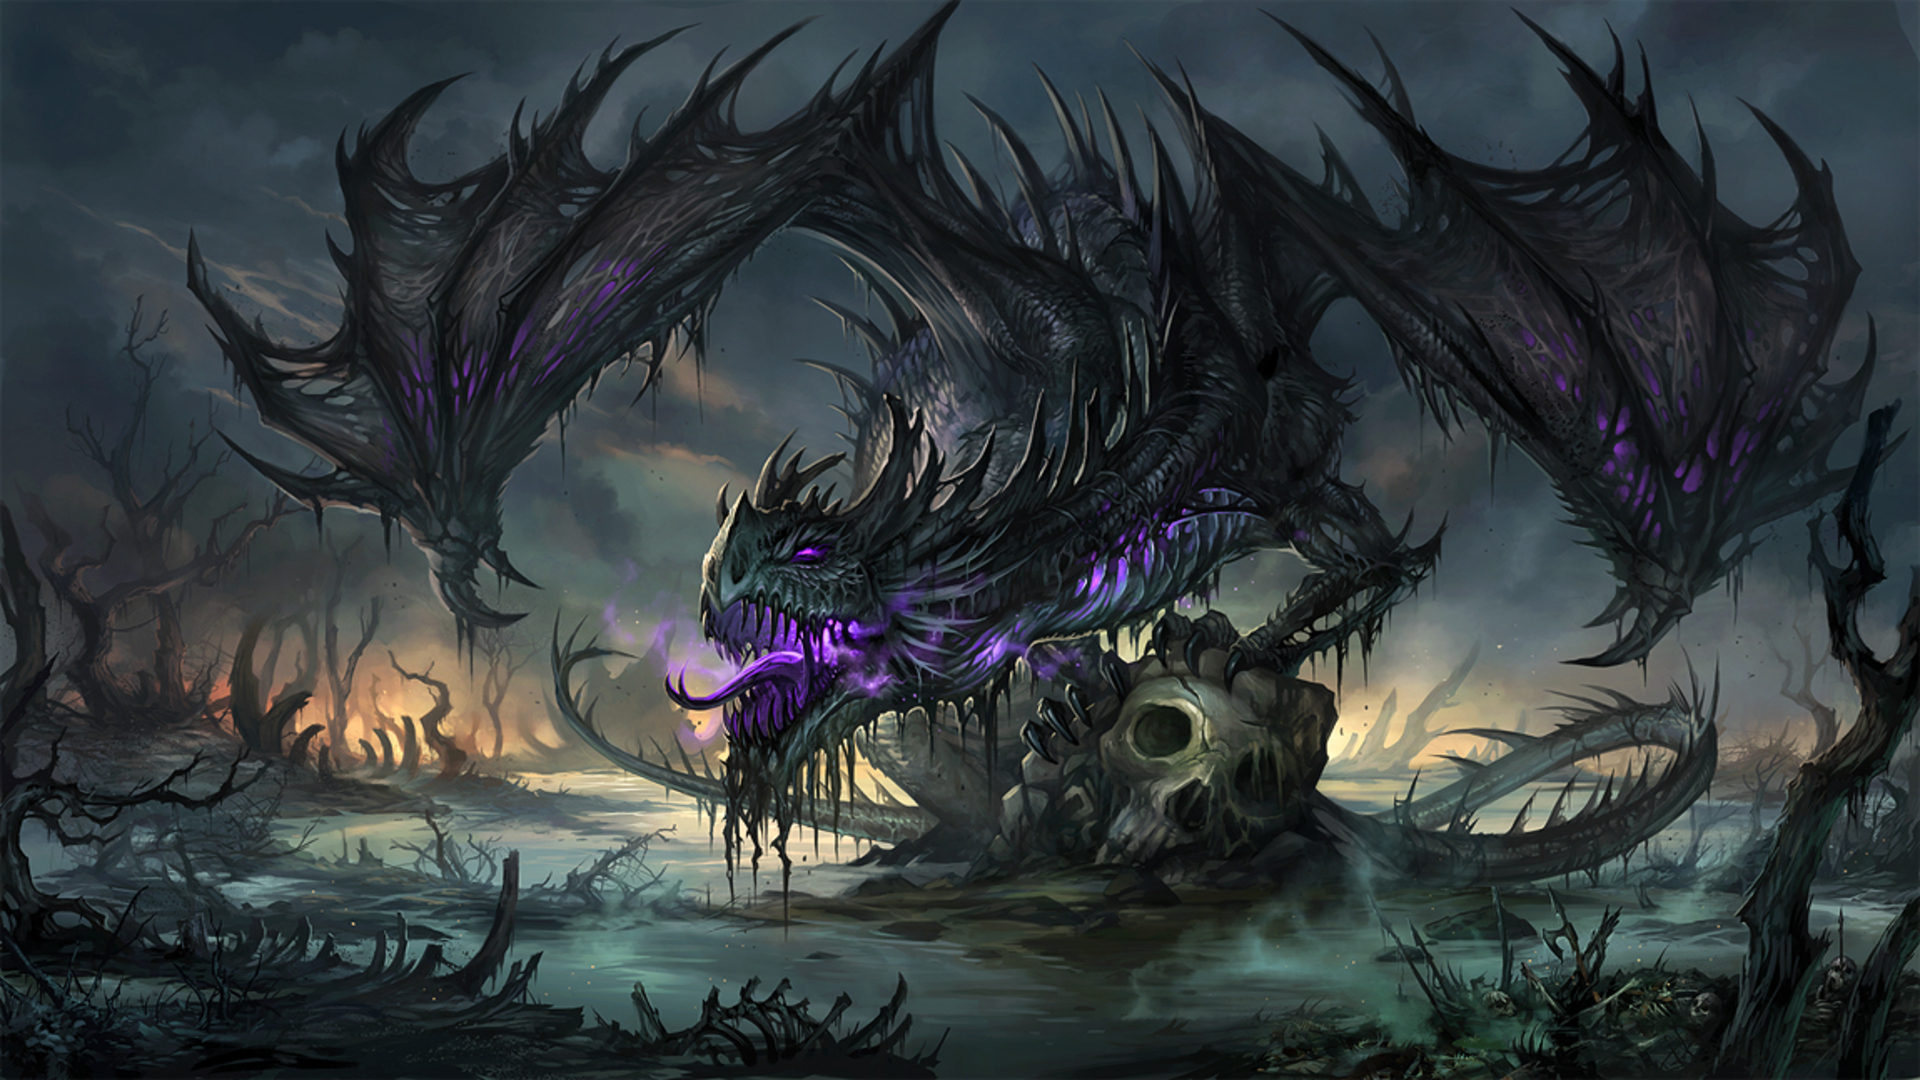 Fantasy-Dragon-Background-1920-x-1080-Id-Abyss-wallpaper-wp3605485-1